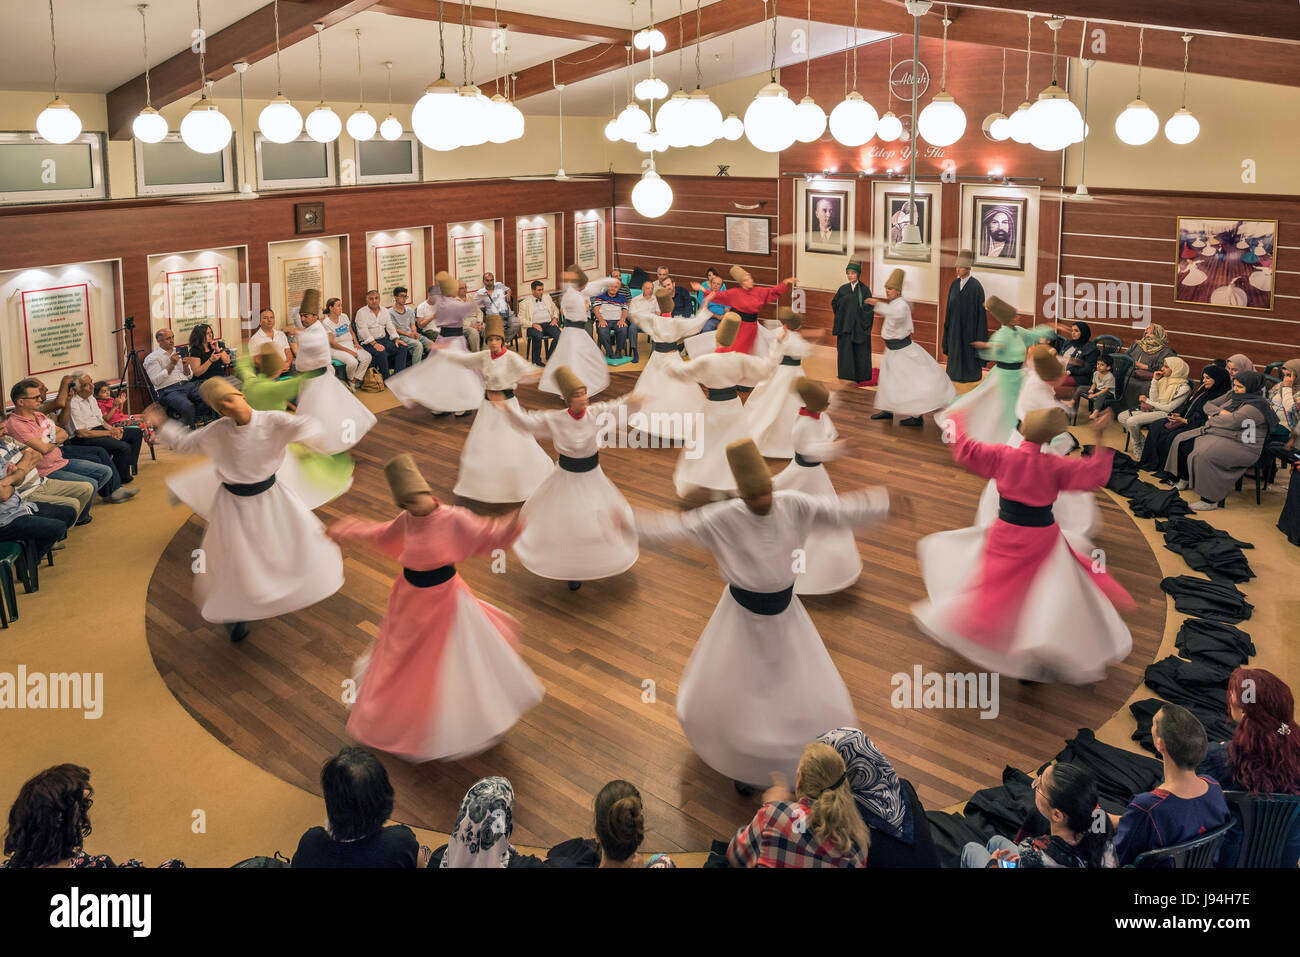 Whirling Dervishes Ceremony, Istanbul,Turkey - Stock Image